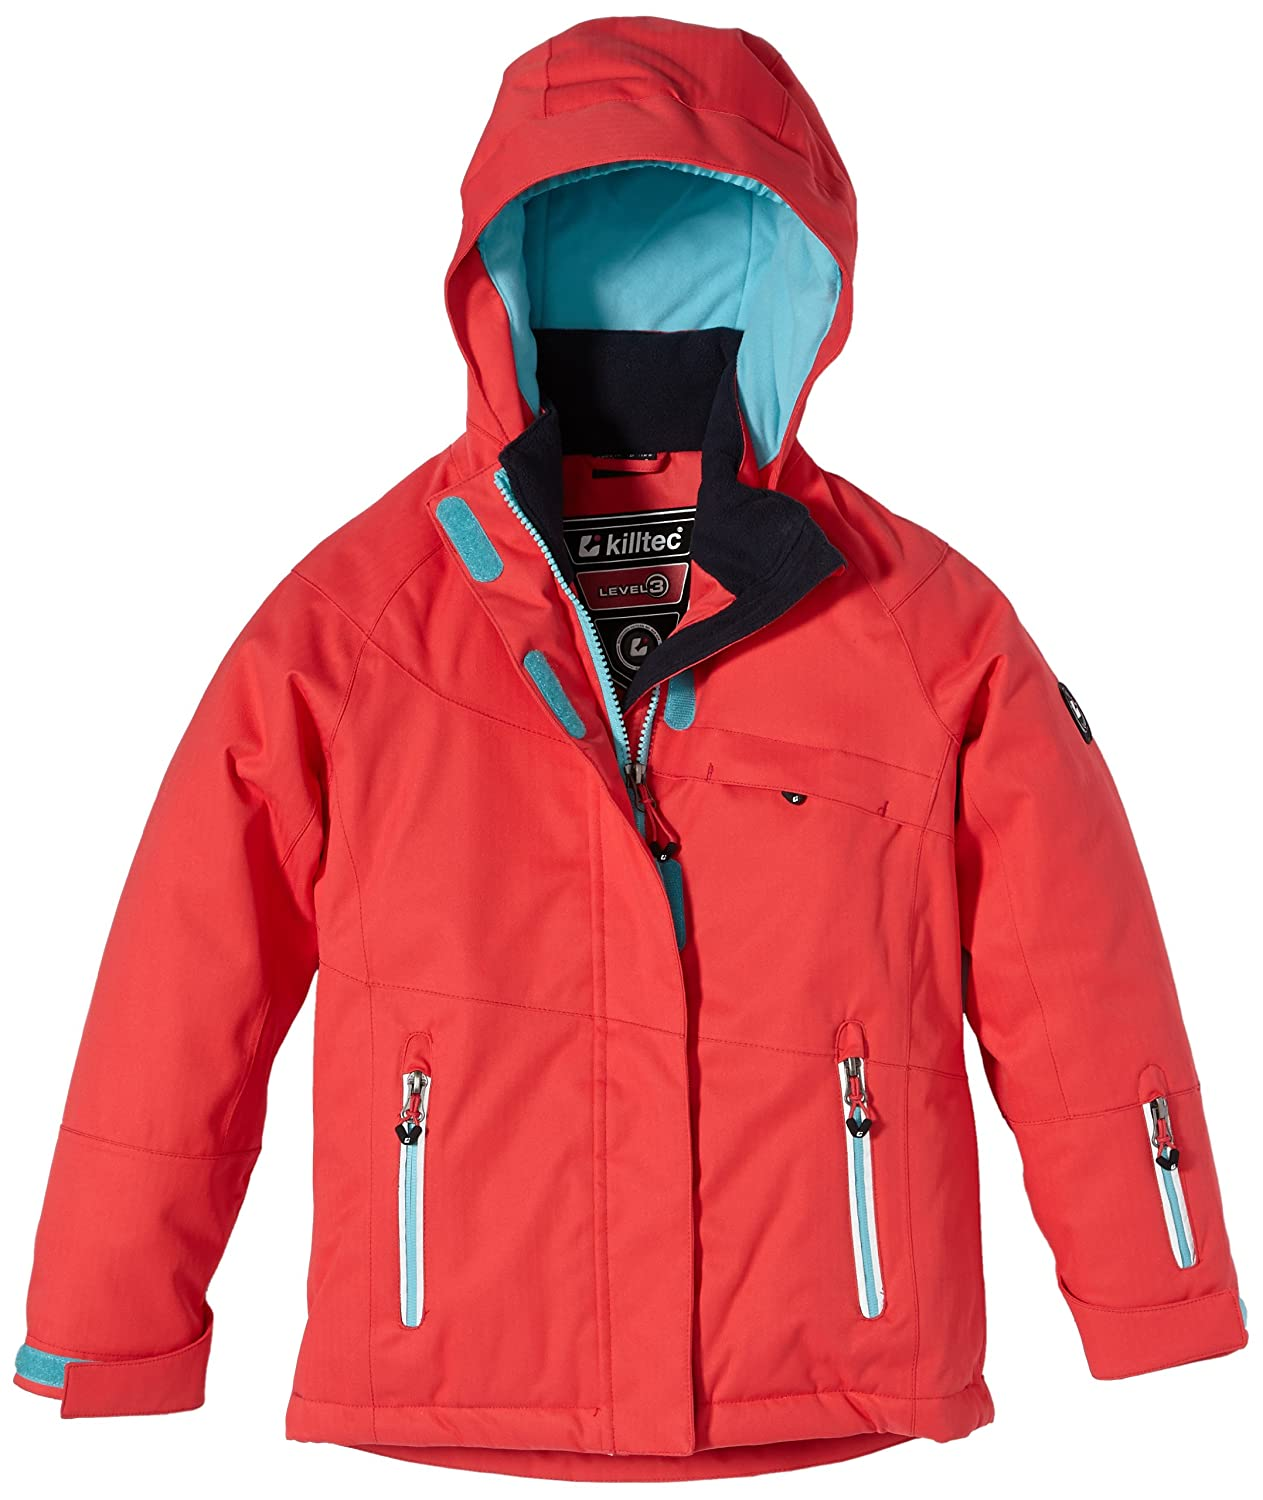 Killtec Kinder Funktionsjacke mit Kapuze Salvia Junior bestellen